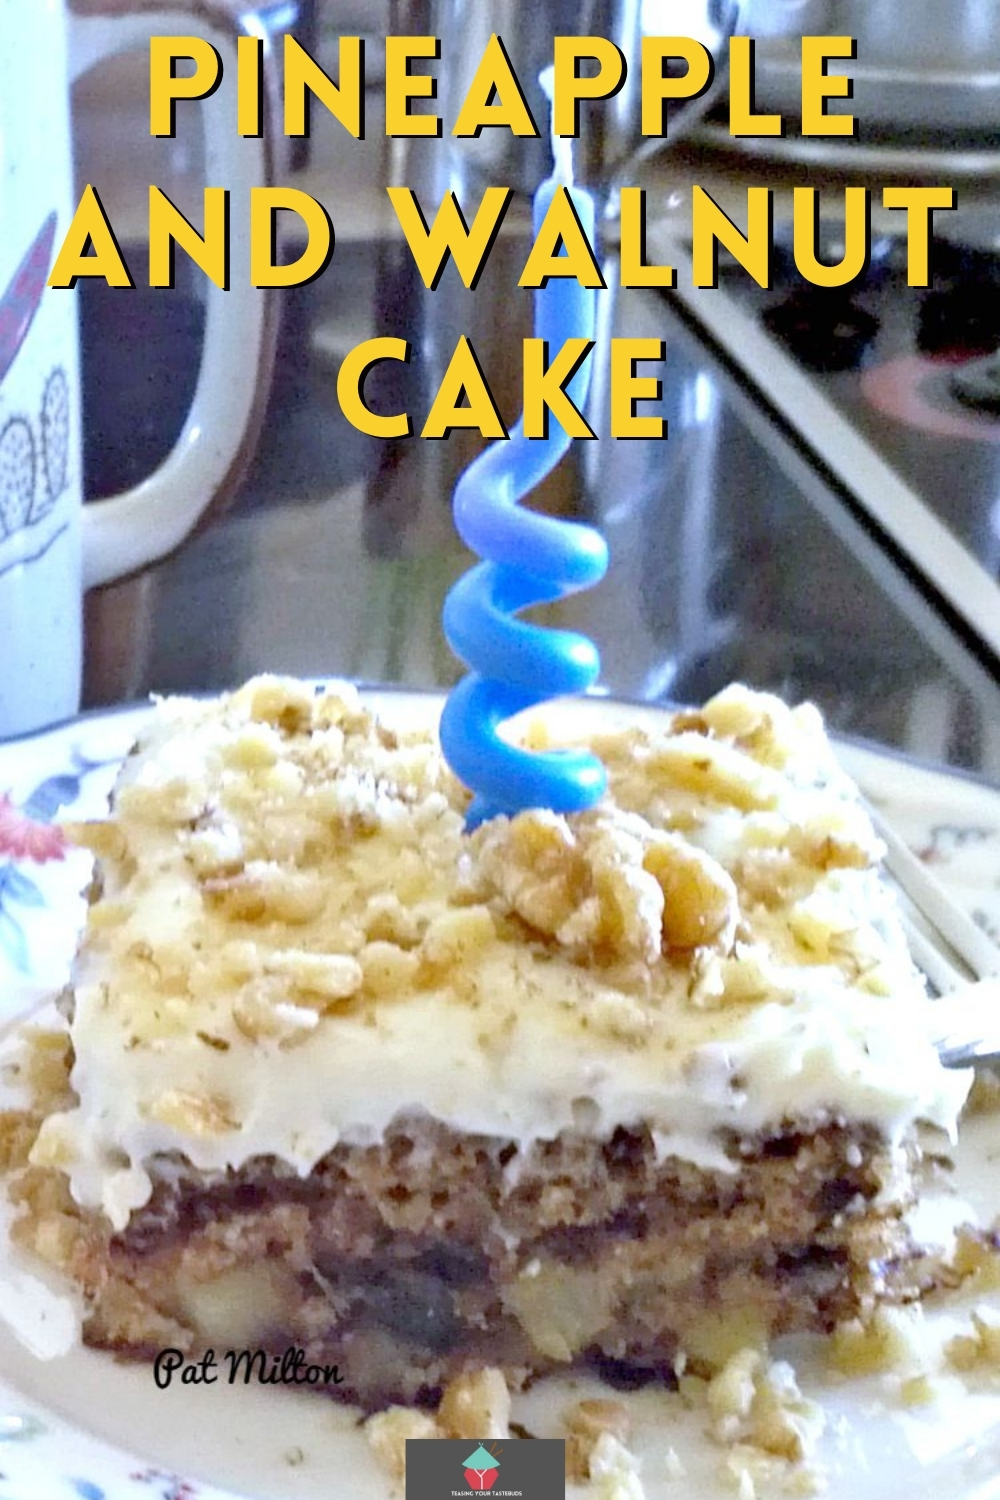 Pineapple and Walnut Cake is a lovely sheet style cake with crushed pineapple and nuts. There's also a really easy cream cheese frosting for the top of the cake